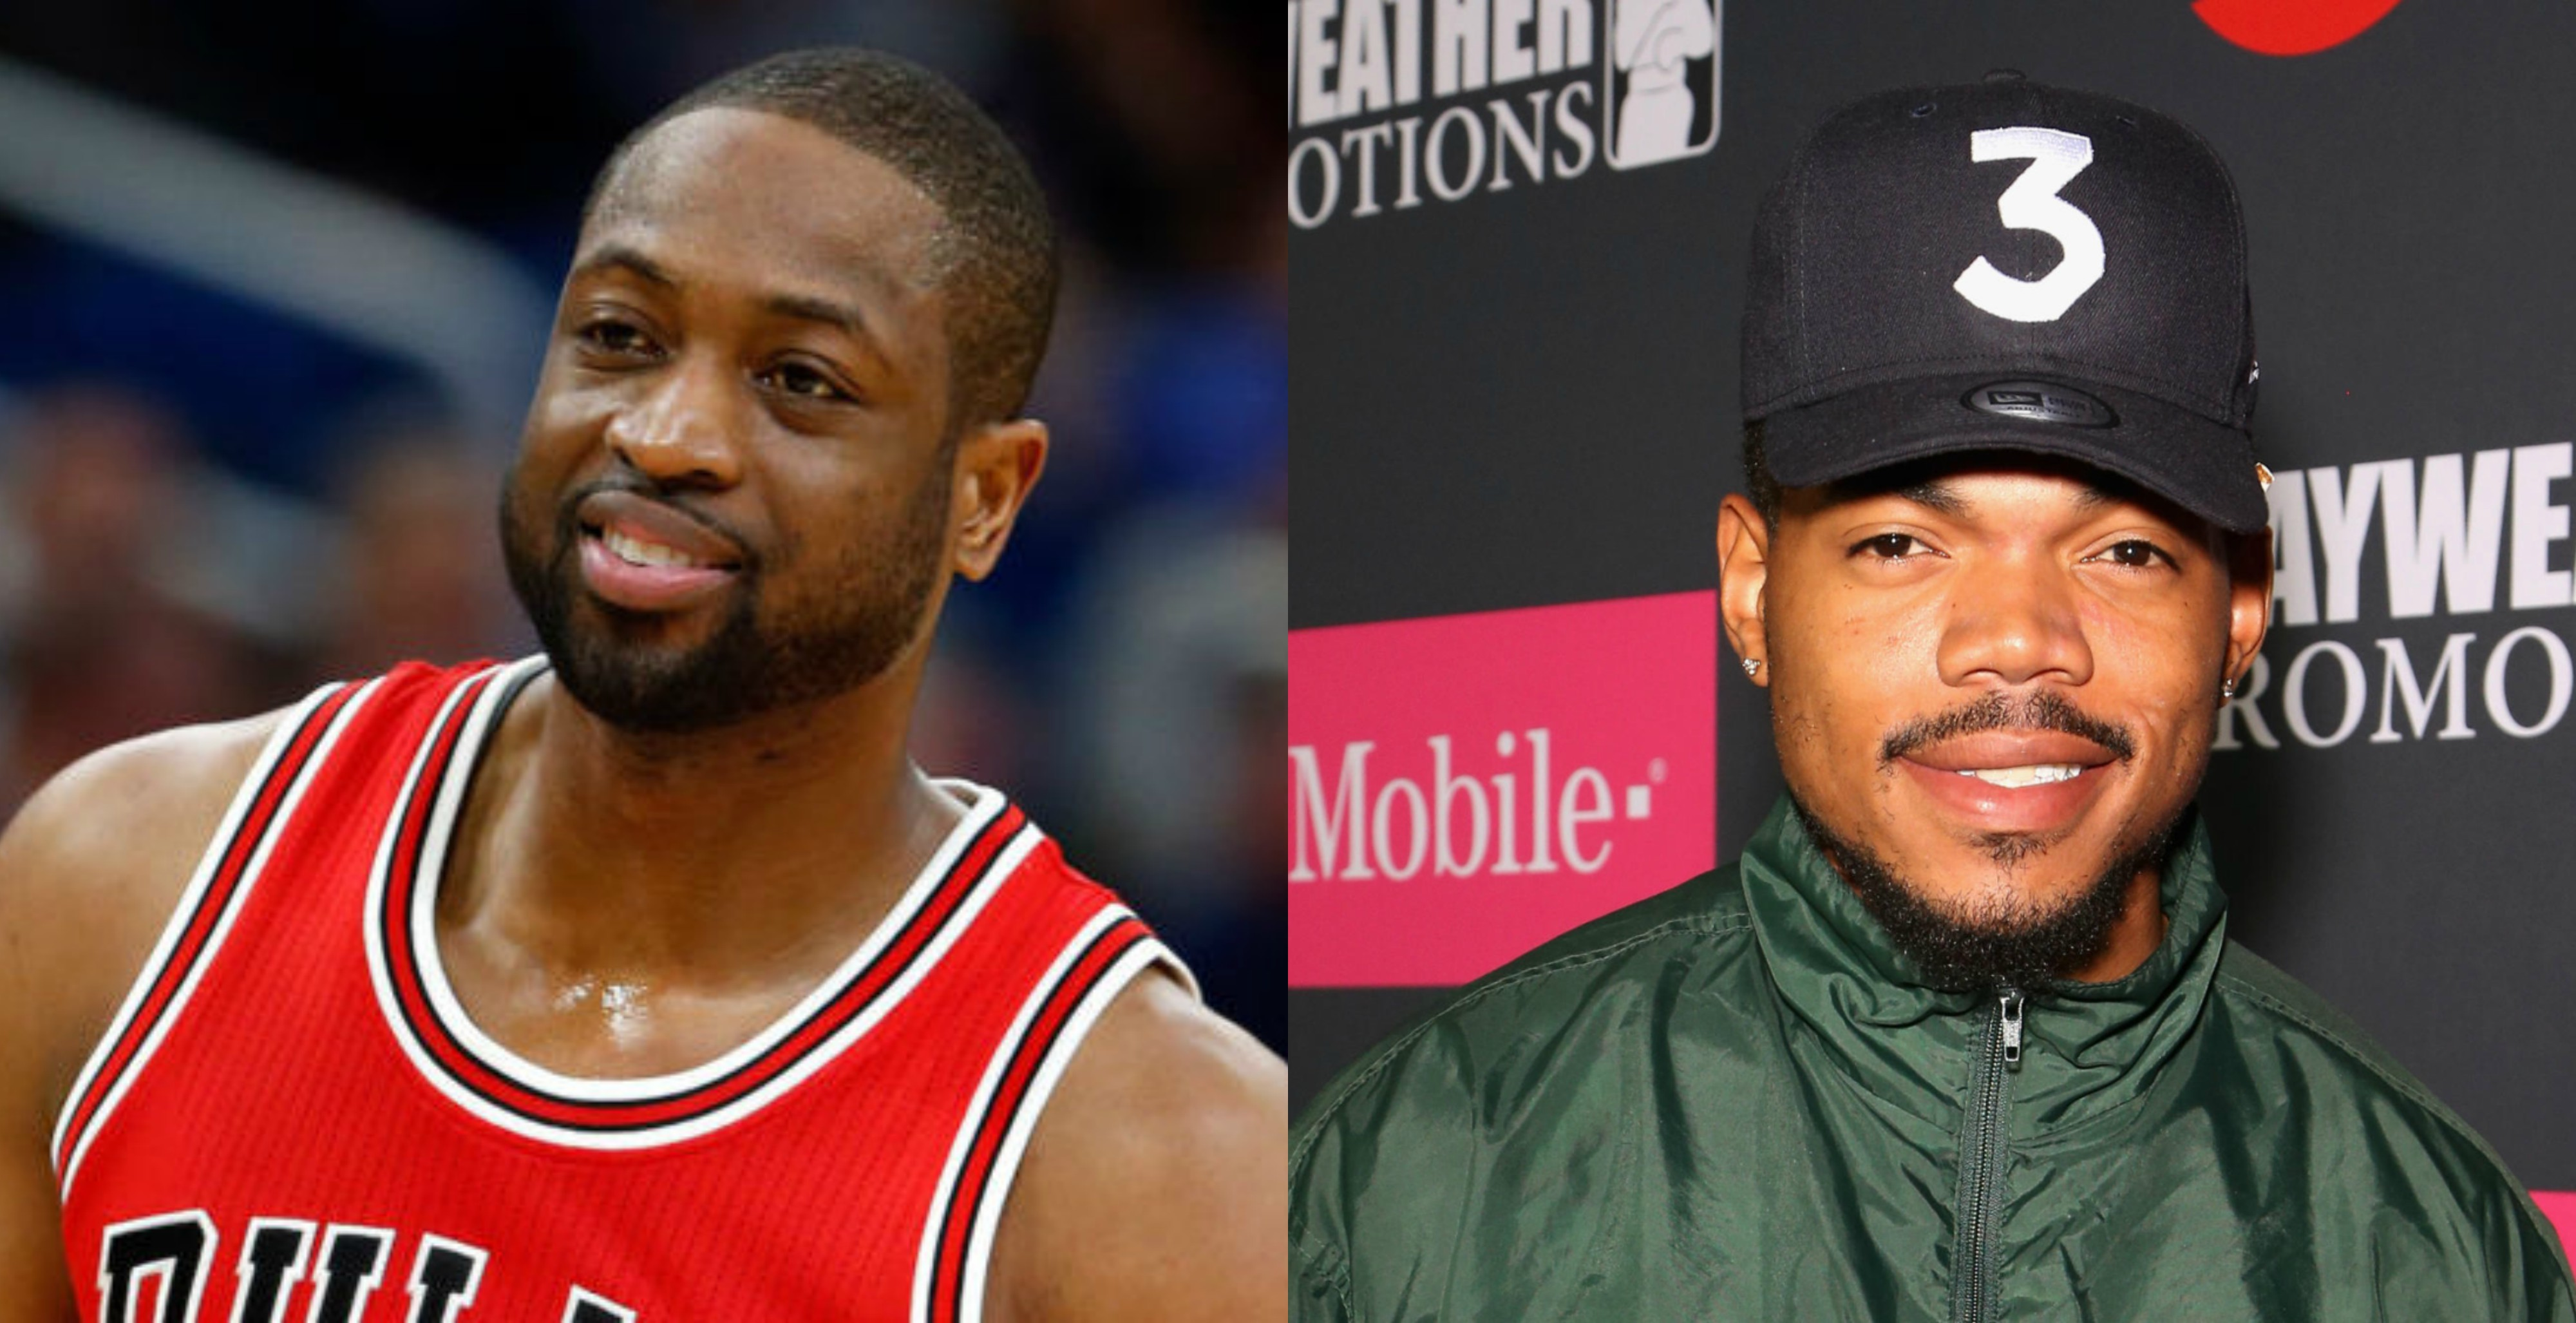 Basketball Documentary Produced by Chance the Rapper and Dwyane Wade to Air on FOX